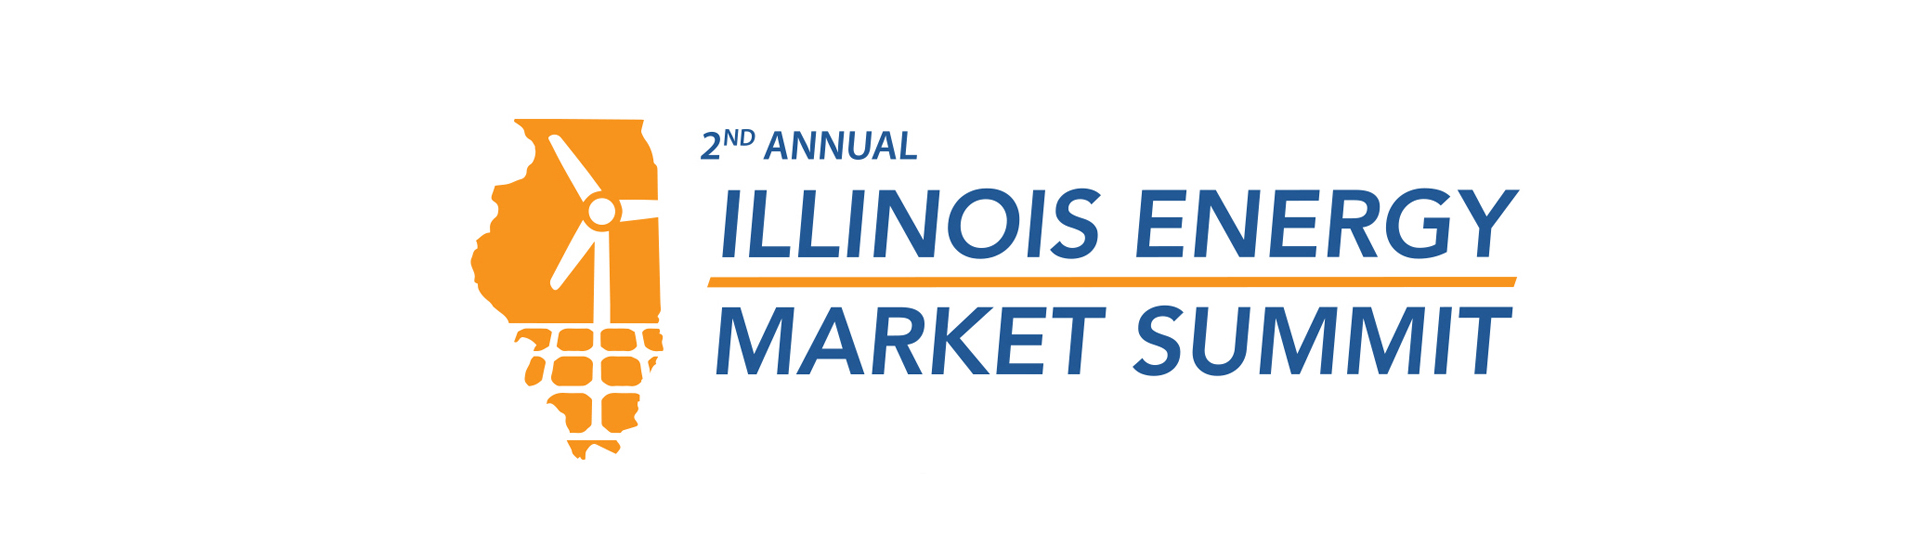 Illinois Energy Market Summit - Presented by Infocast